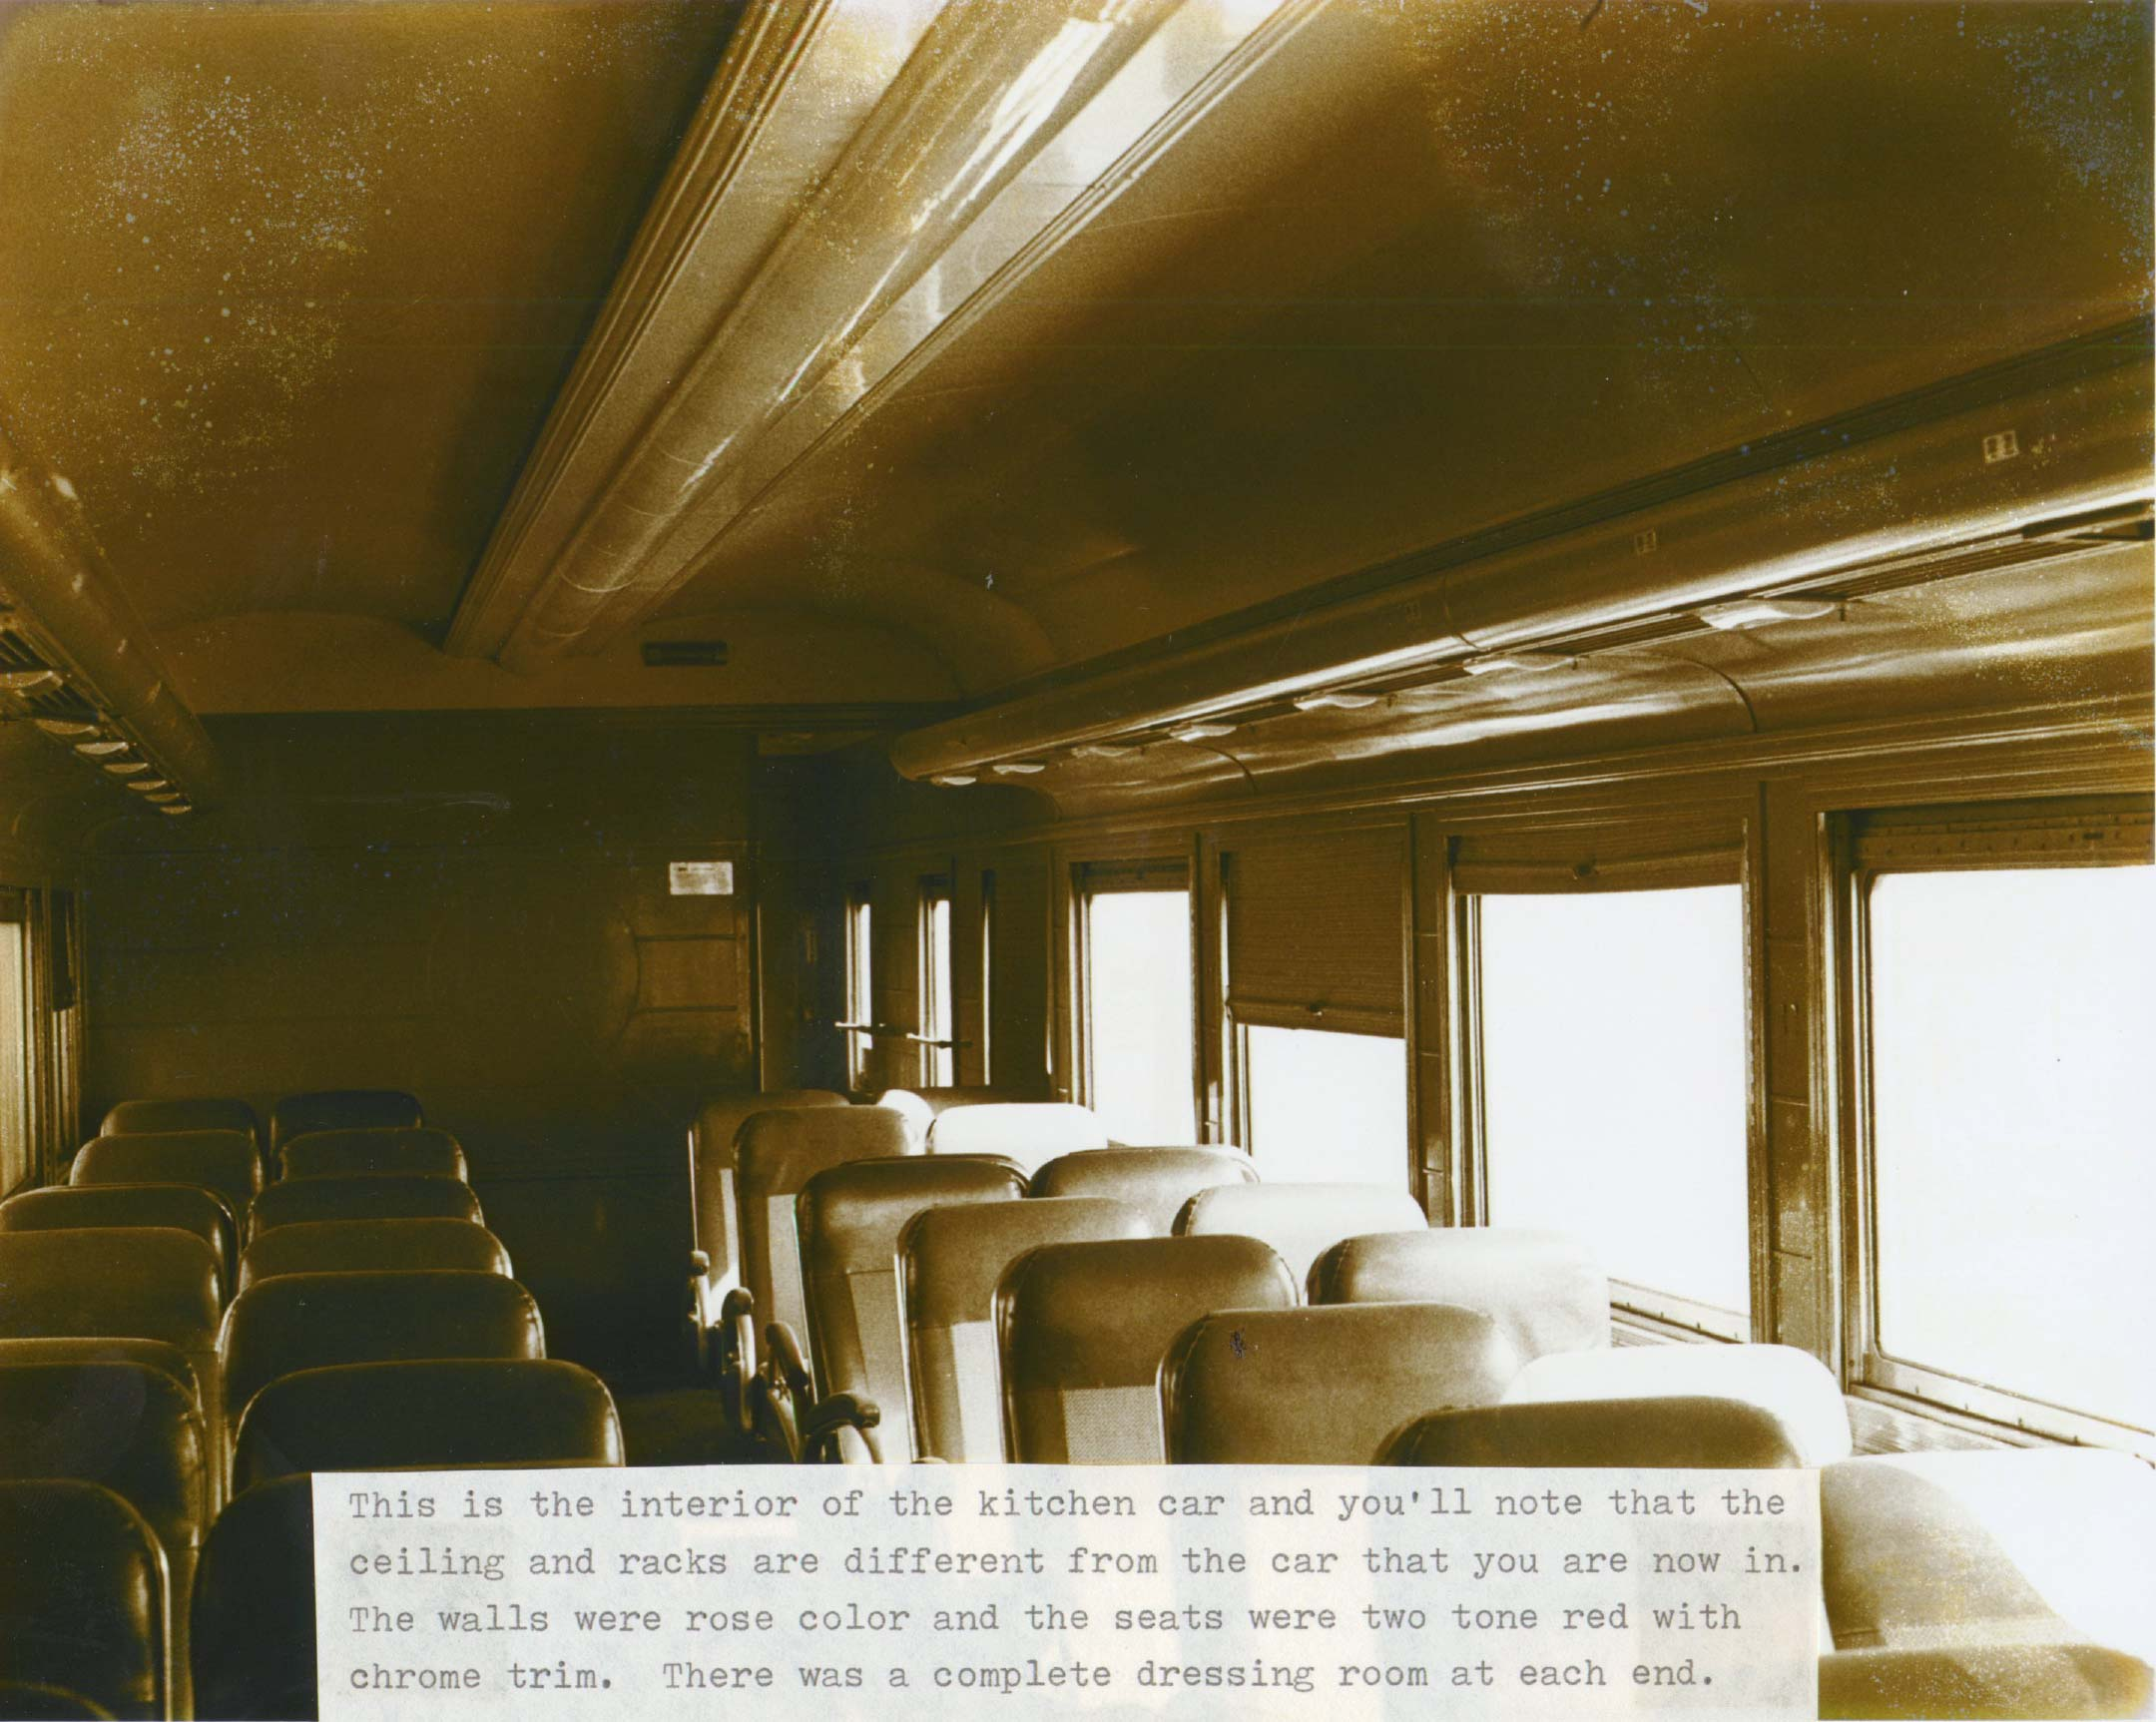 Carney history of the 1924 yellow passenger train